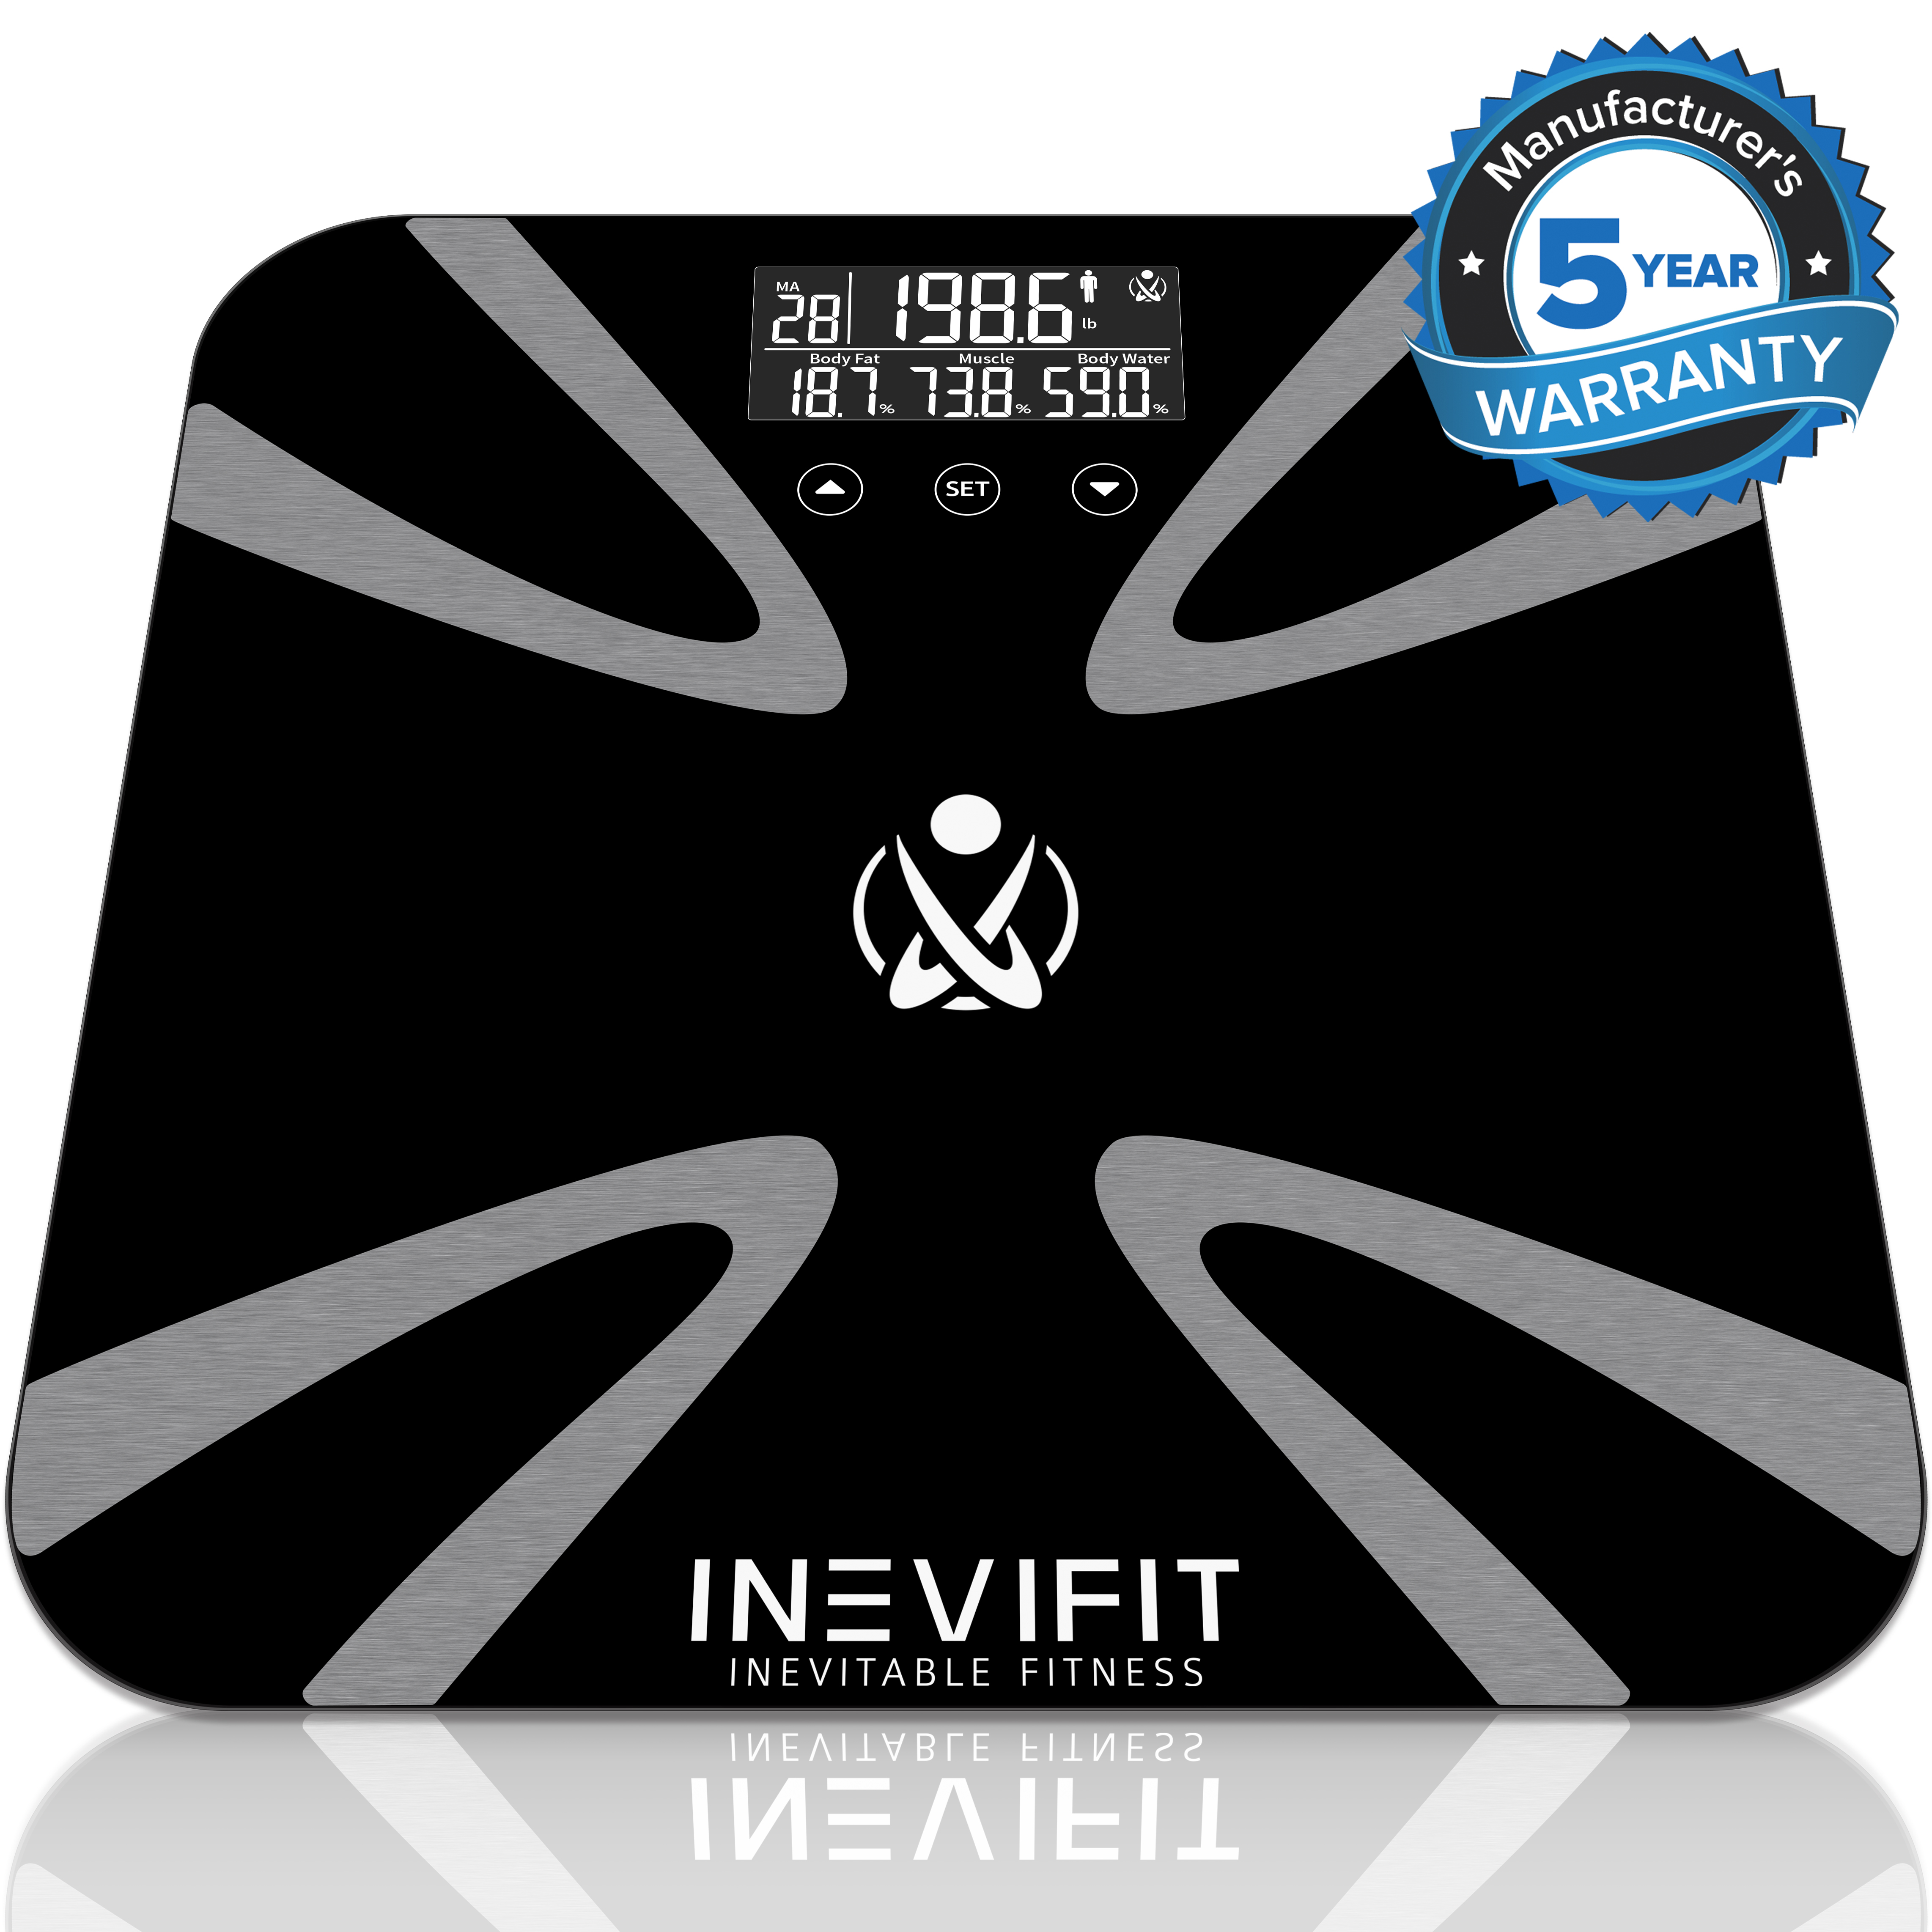 INEVIFIT Body Fat Scale with Digital Body Composition Analyzer, Body Weight, BMI & more